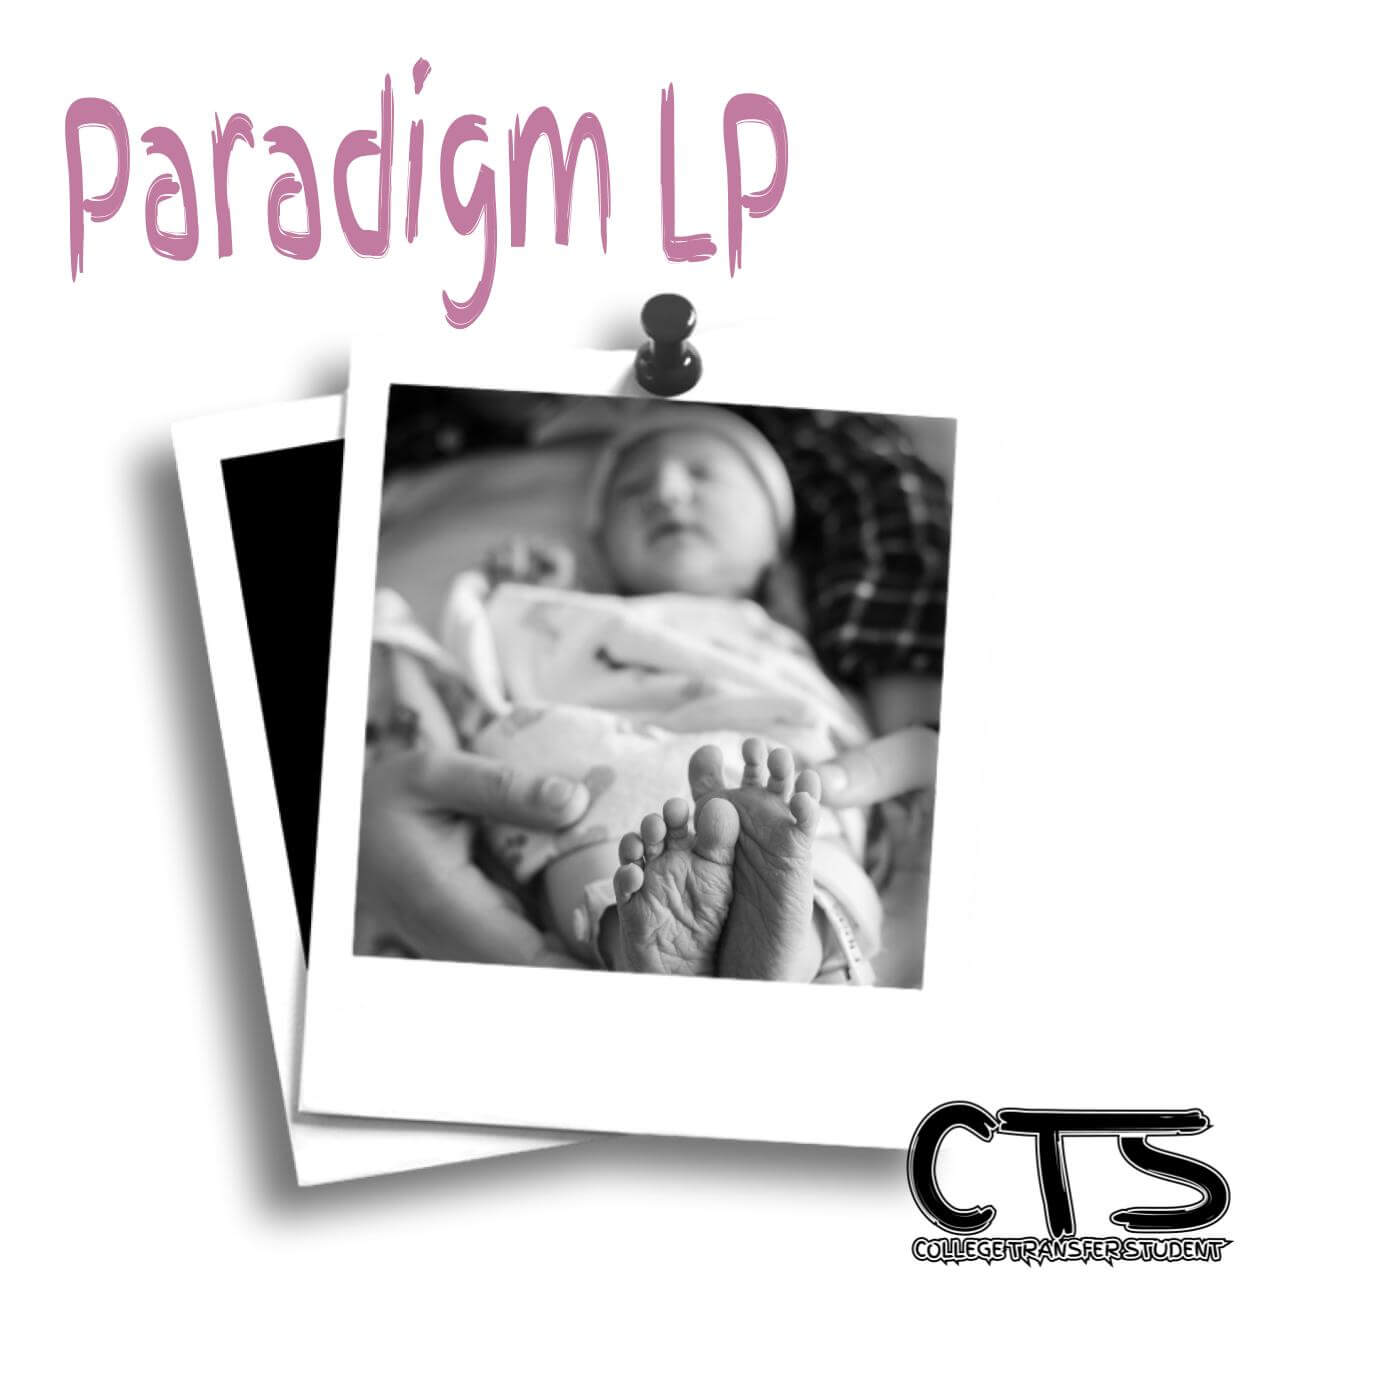 Album Artwork: Paradigm LP by College Transfer Student